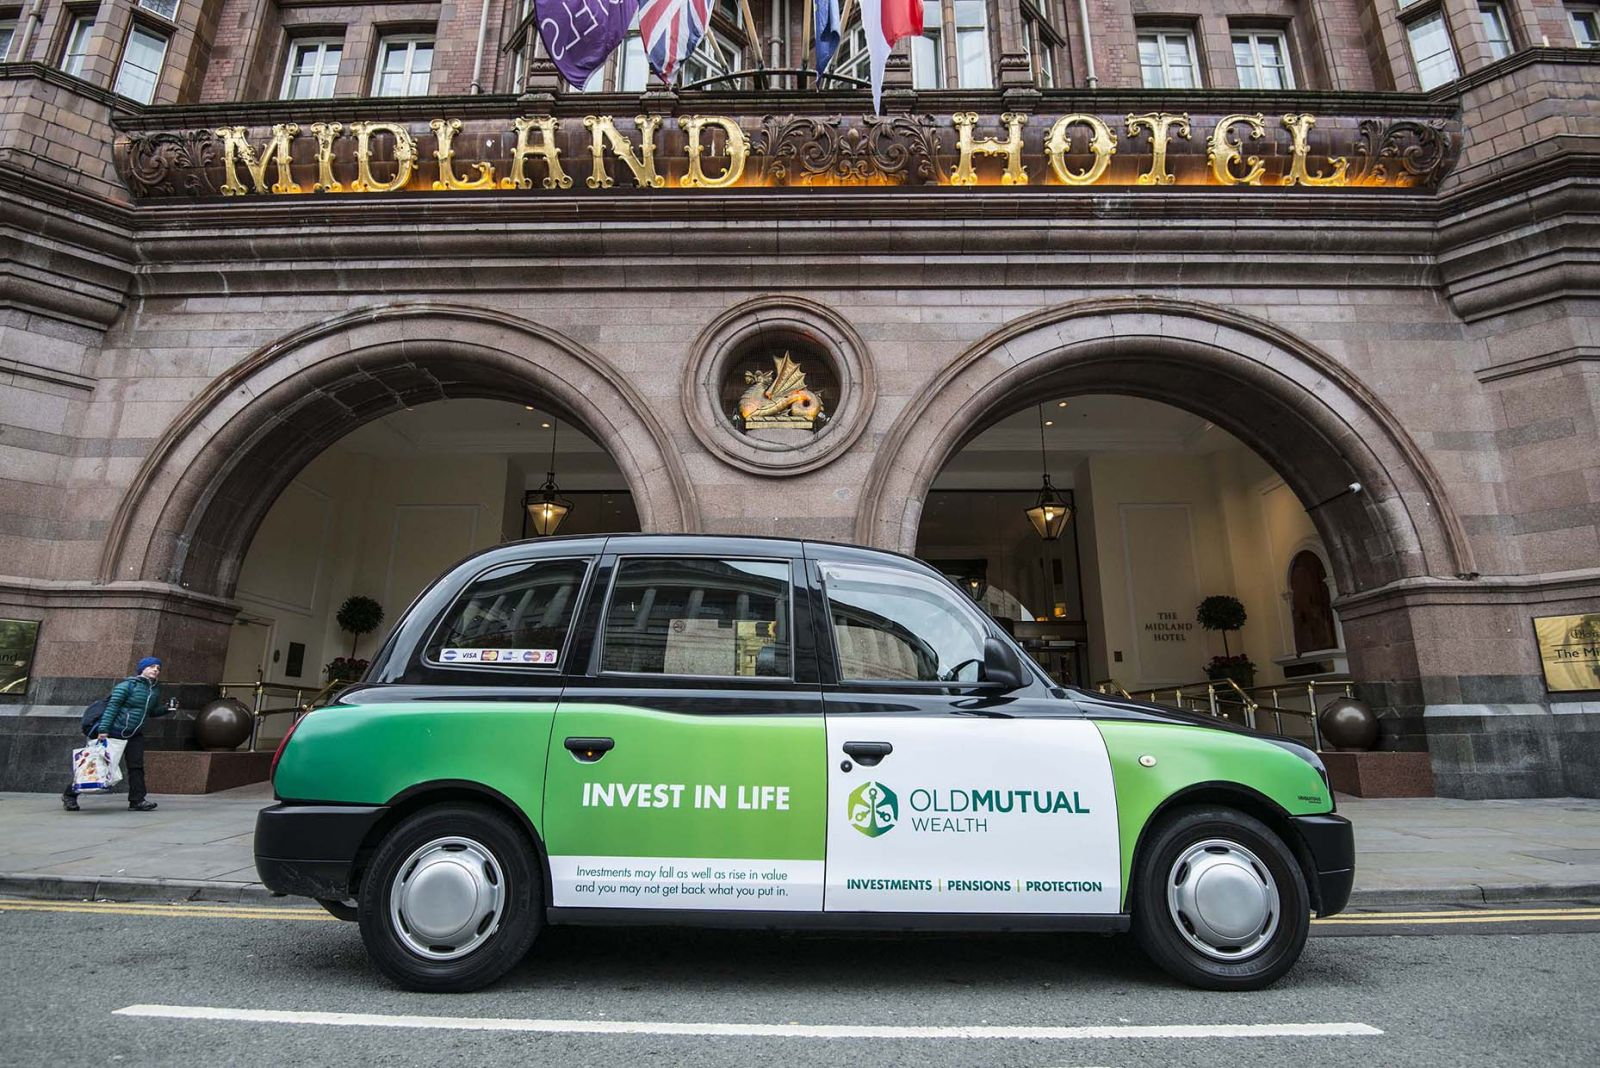 2016 Ubiquitous campaign for Old Mutual Wealth - Invest in life.